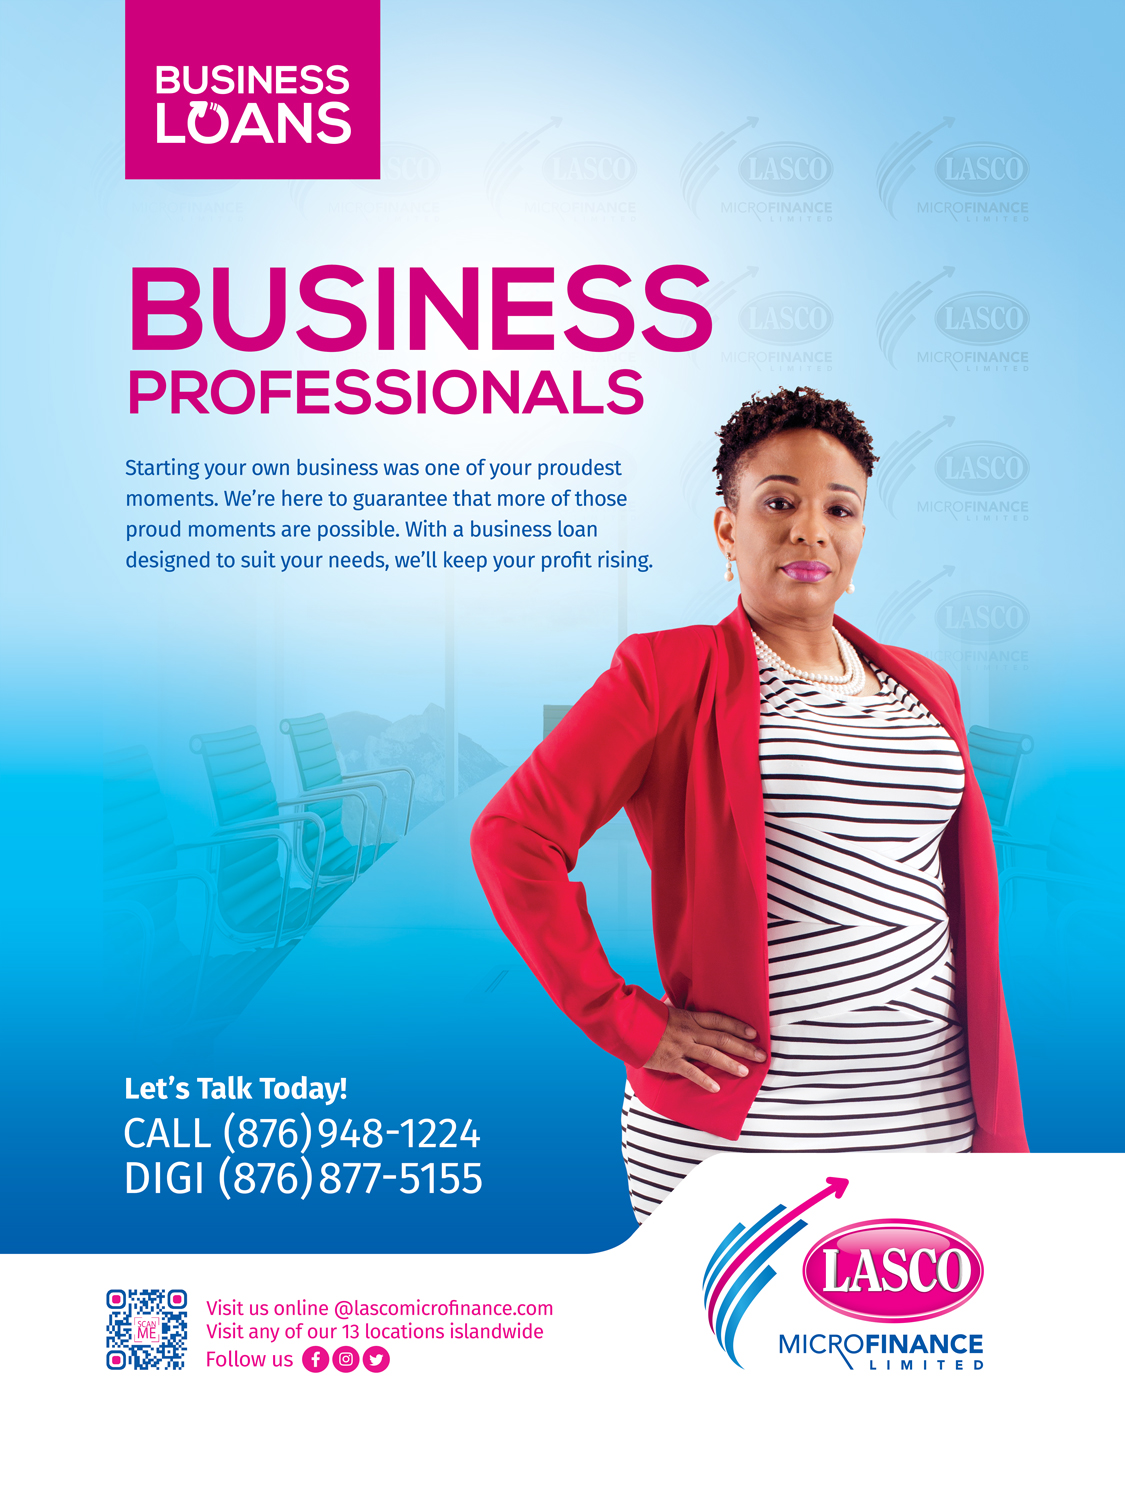 Business Loans - LASCO Financial Services Ltd